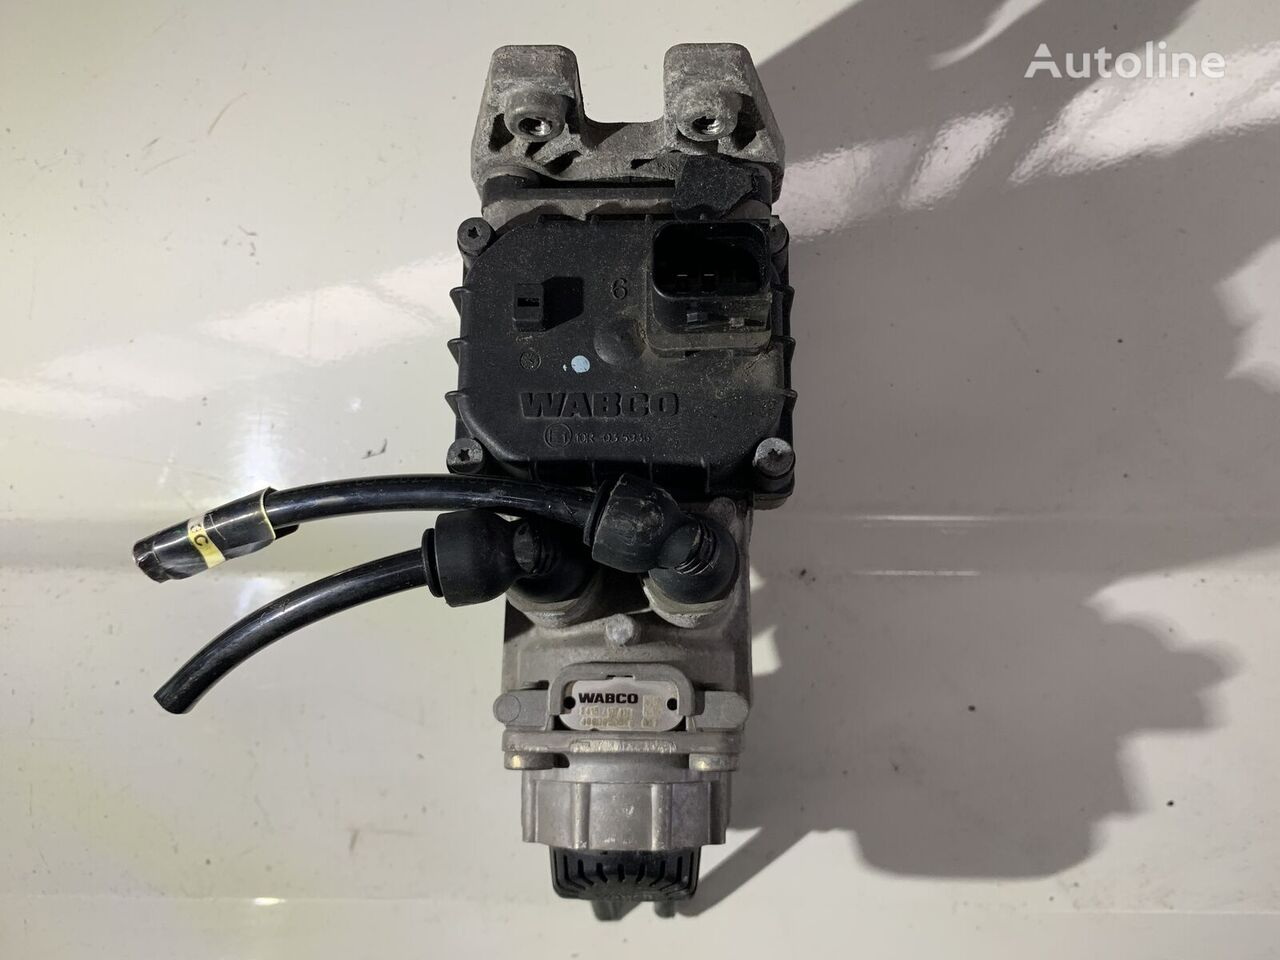 WABCO pneumatic valve for DAF LF 6 truck